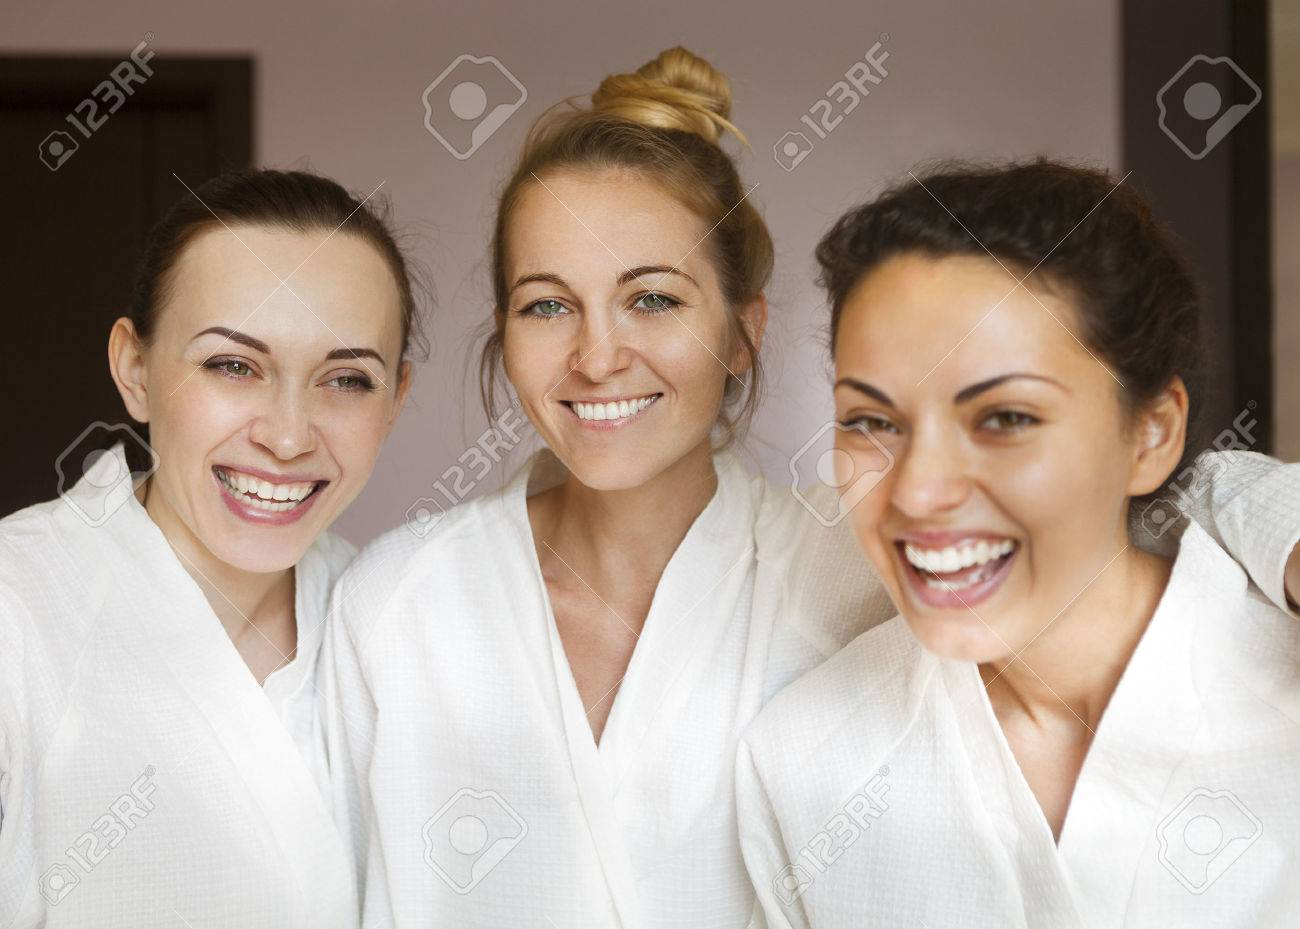 Three young happy women at spa resort. Frenship and wellbeing concept - 47707826